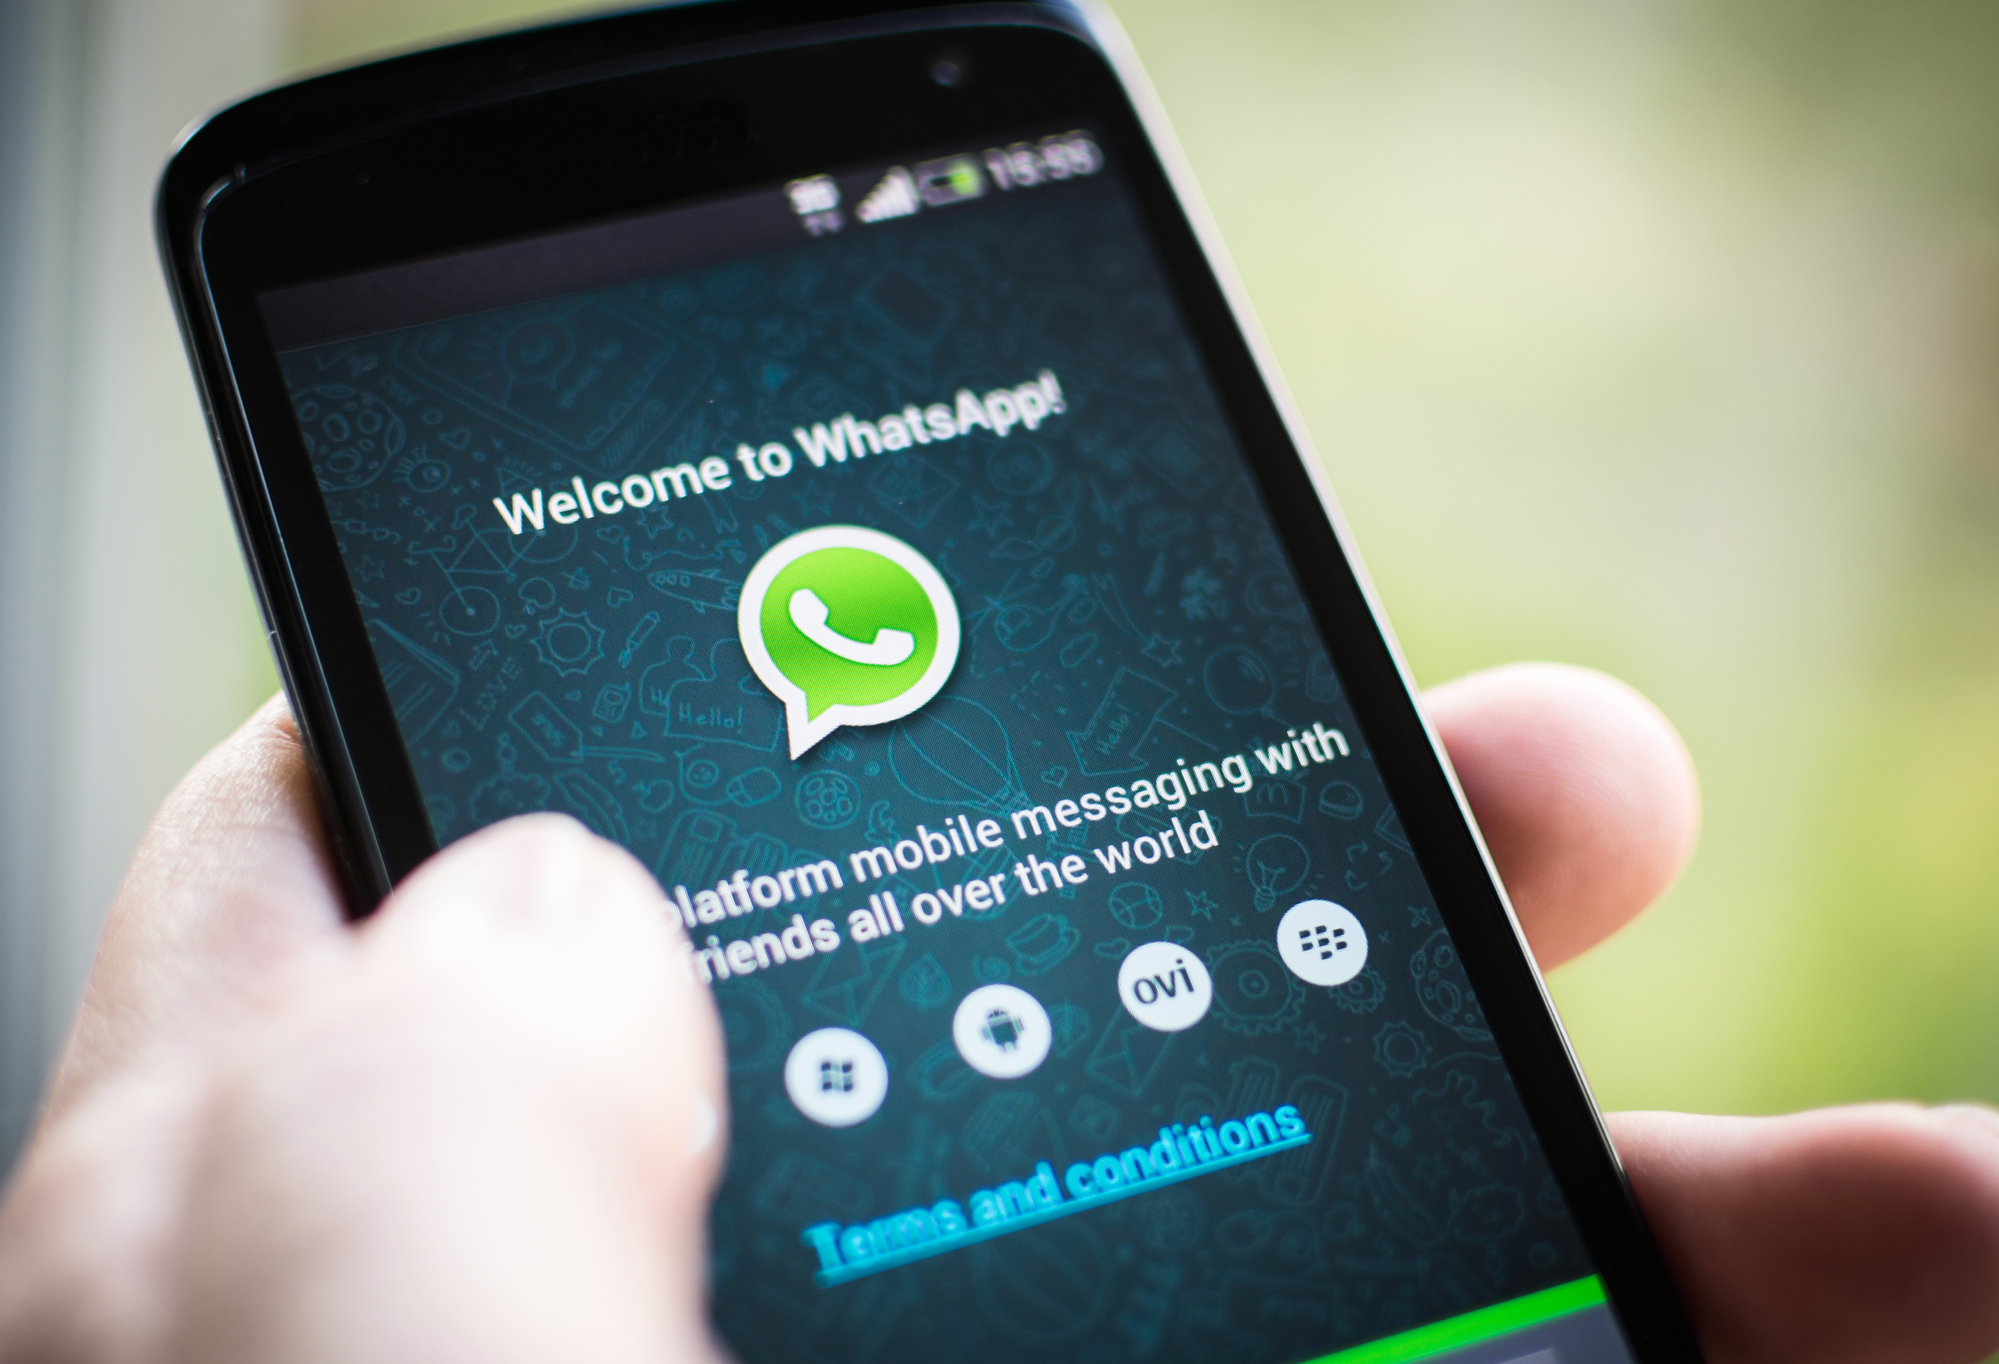 How do I Send Anonymous WhatsApp Messages - How to Send Anonymous